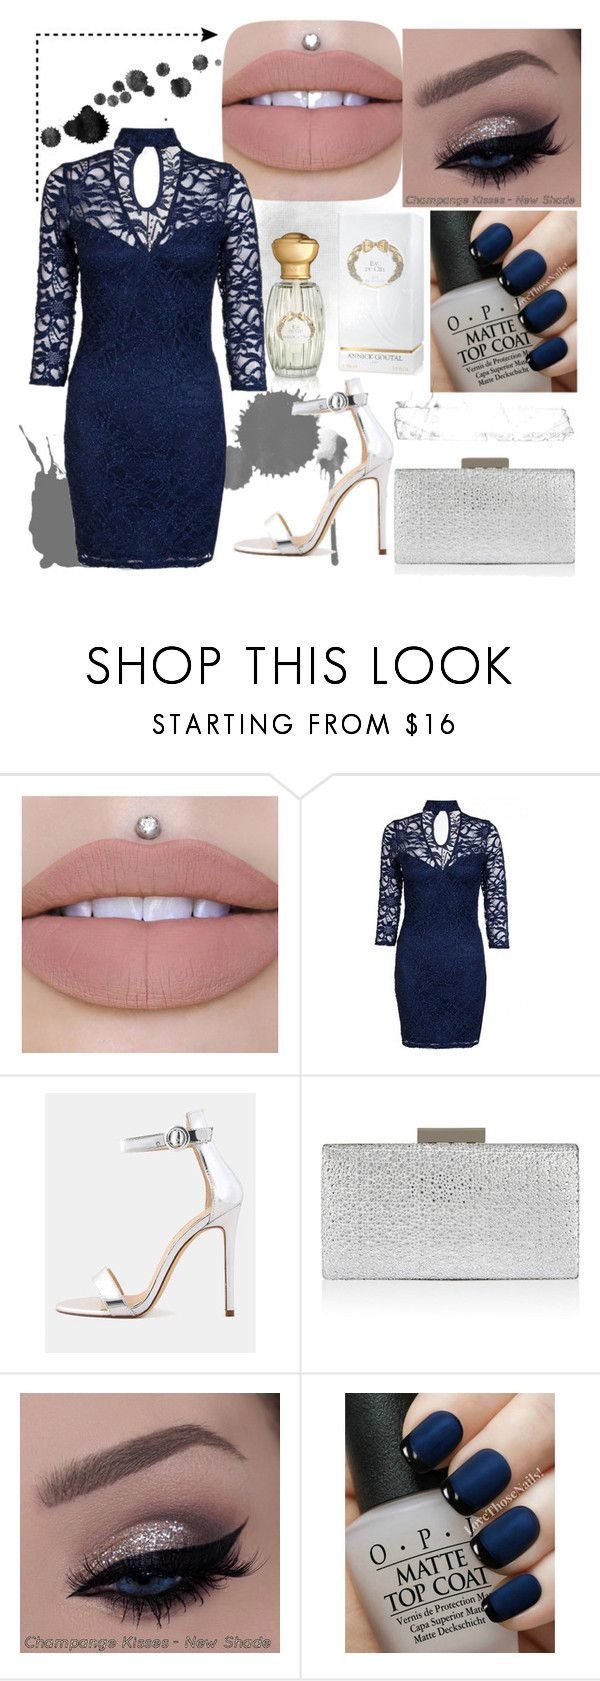 """""""ocaciòn especial"""" by mariapazmarixxd on Polyvore featuring moda, Monsoon, OPI y Annick Goutal"""